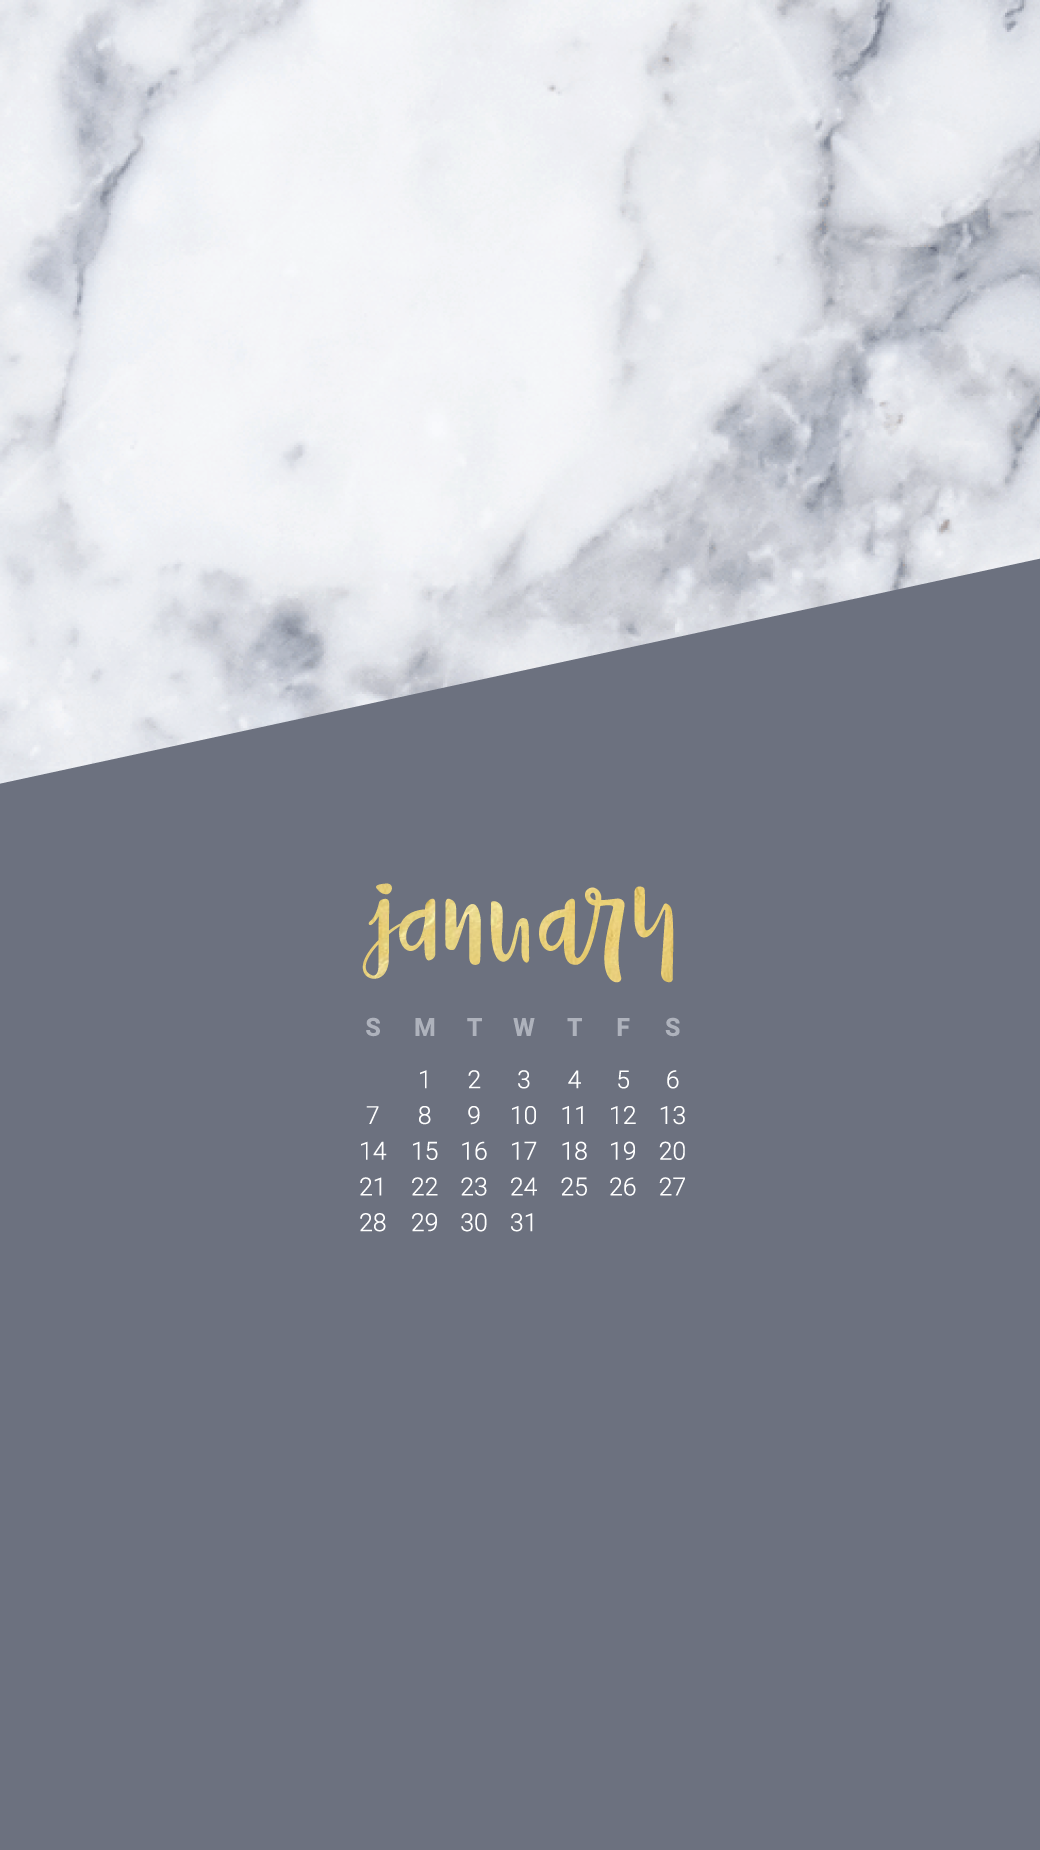 Calendar Wallpaper Iphone Wallpapers Planner Stickers Cover Photos January Patterns Backgrounds